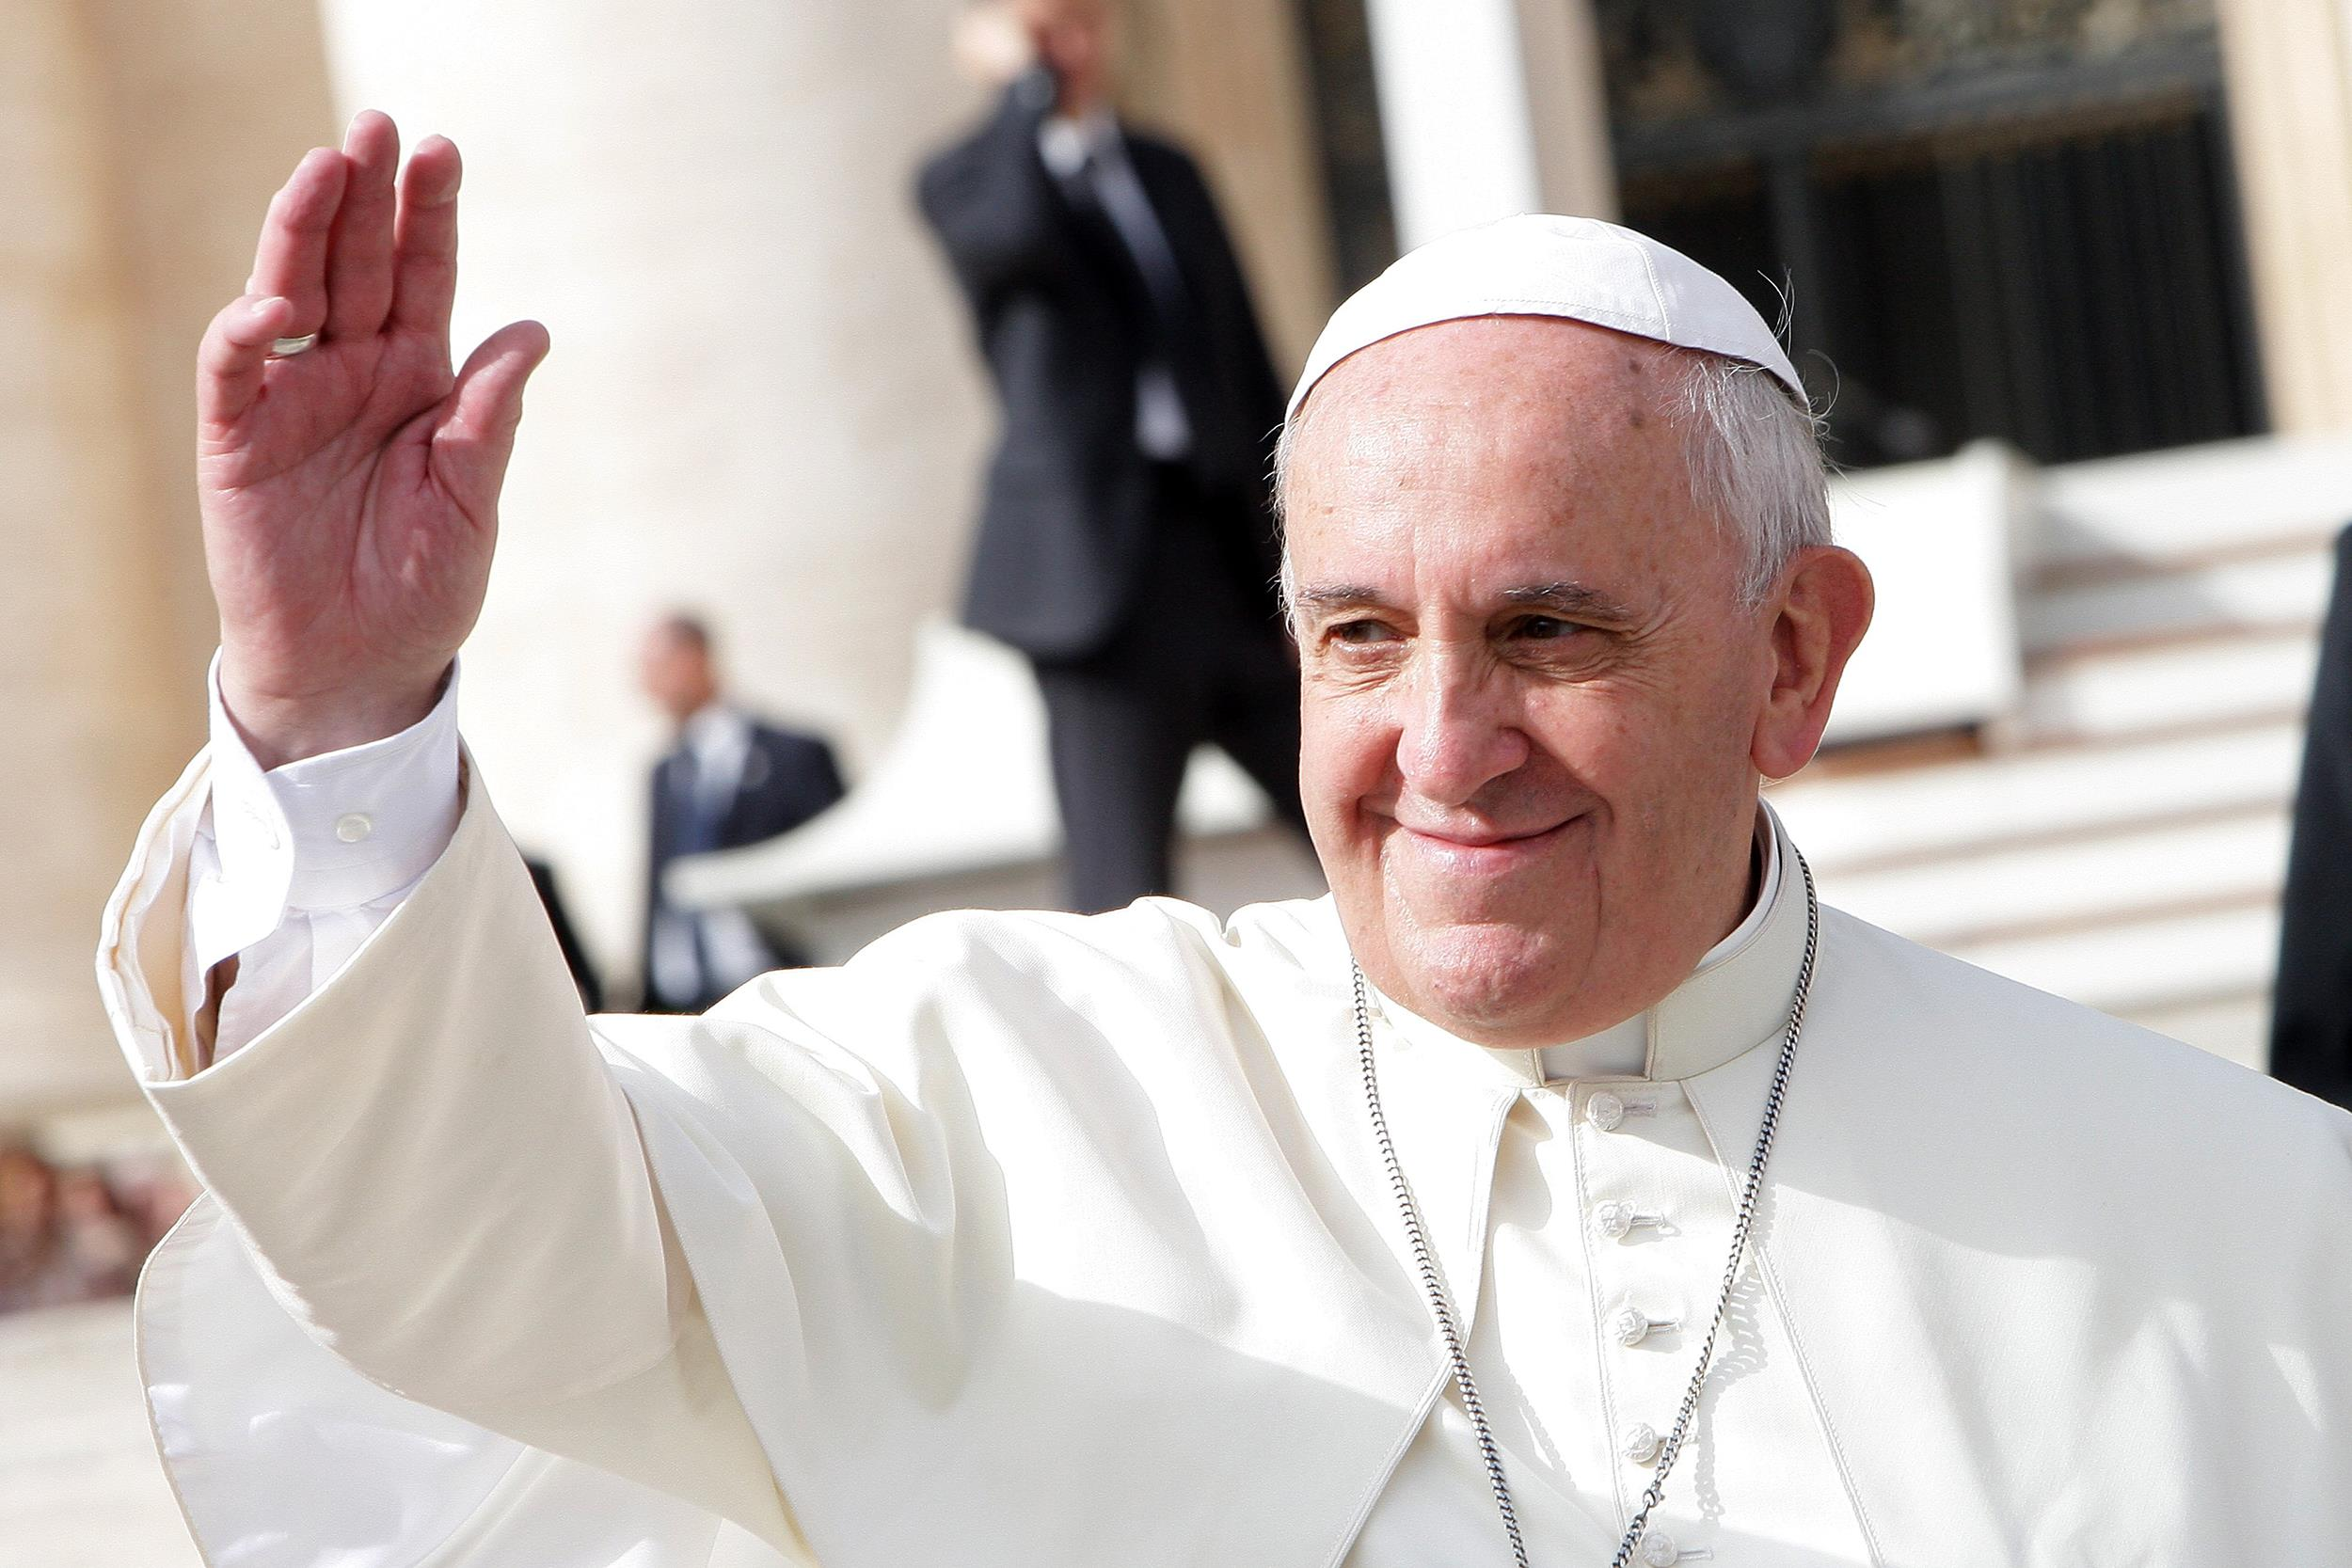 Pope Francis Evolution And Big Bang Theory Are Real